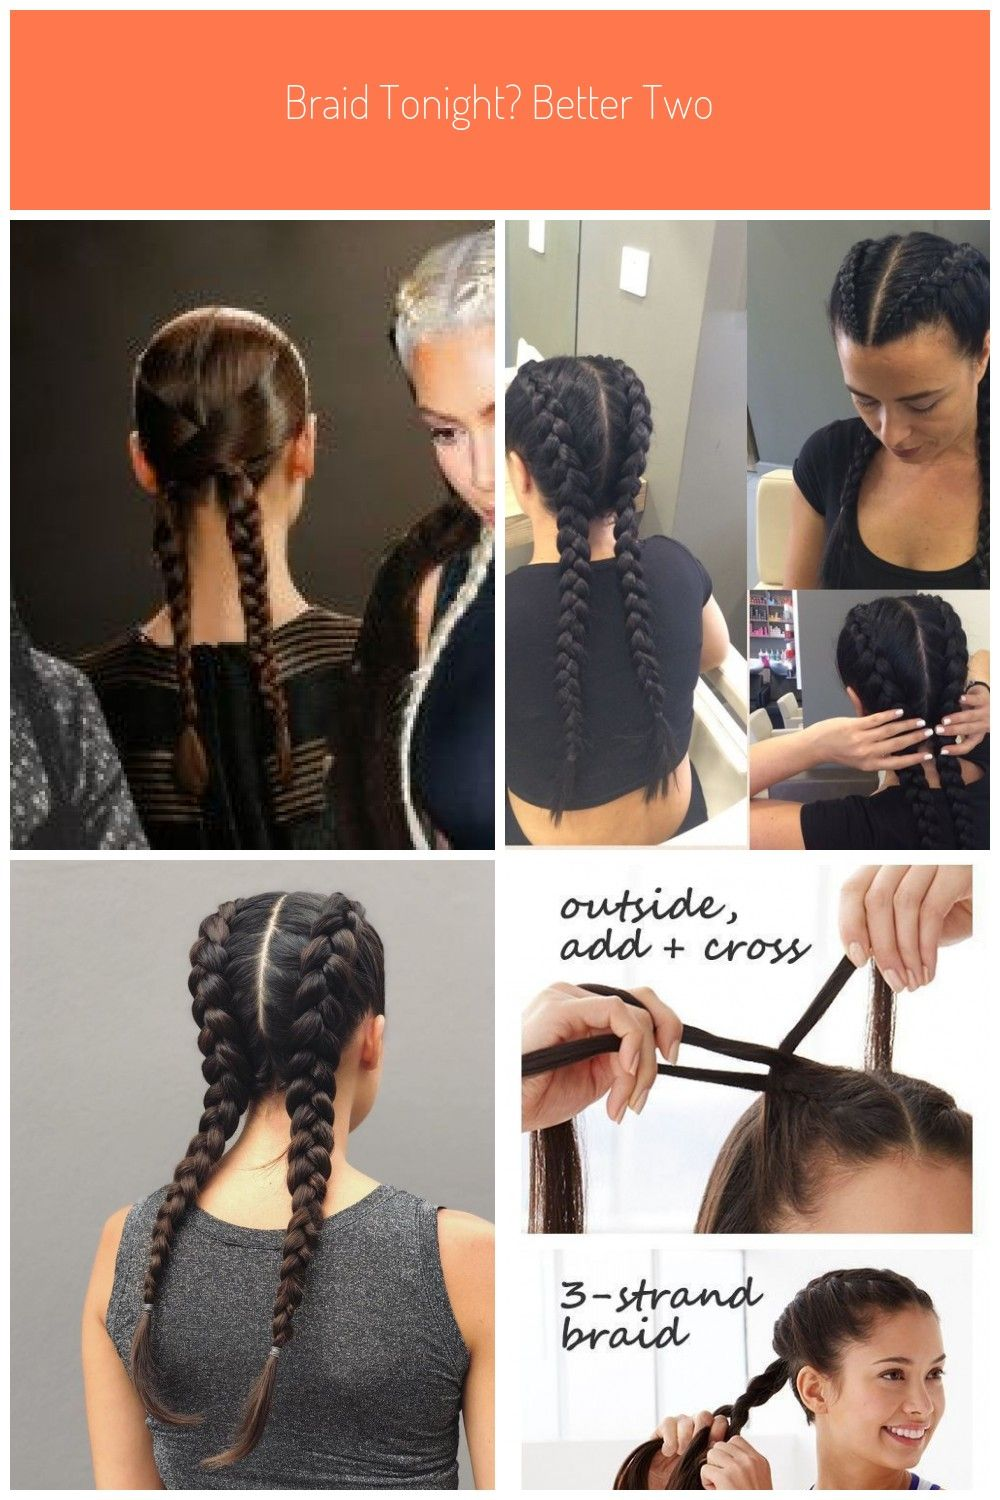 Braid tonight Better two the boxer braids are the latest hairstyle trend  Best  Braid